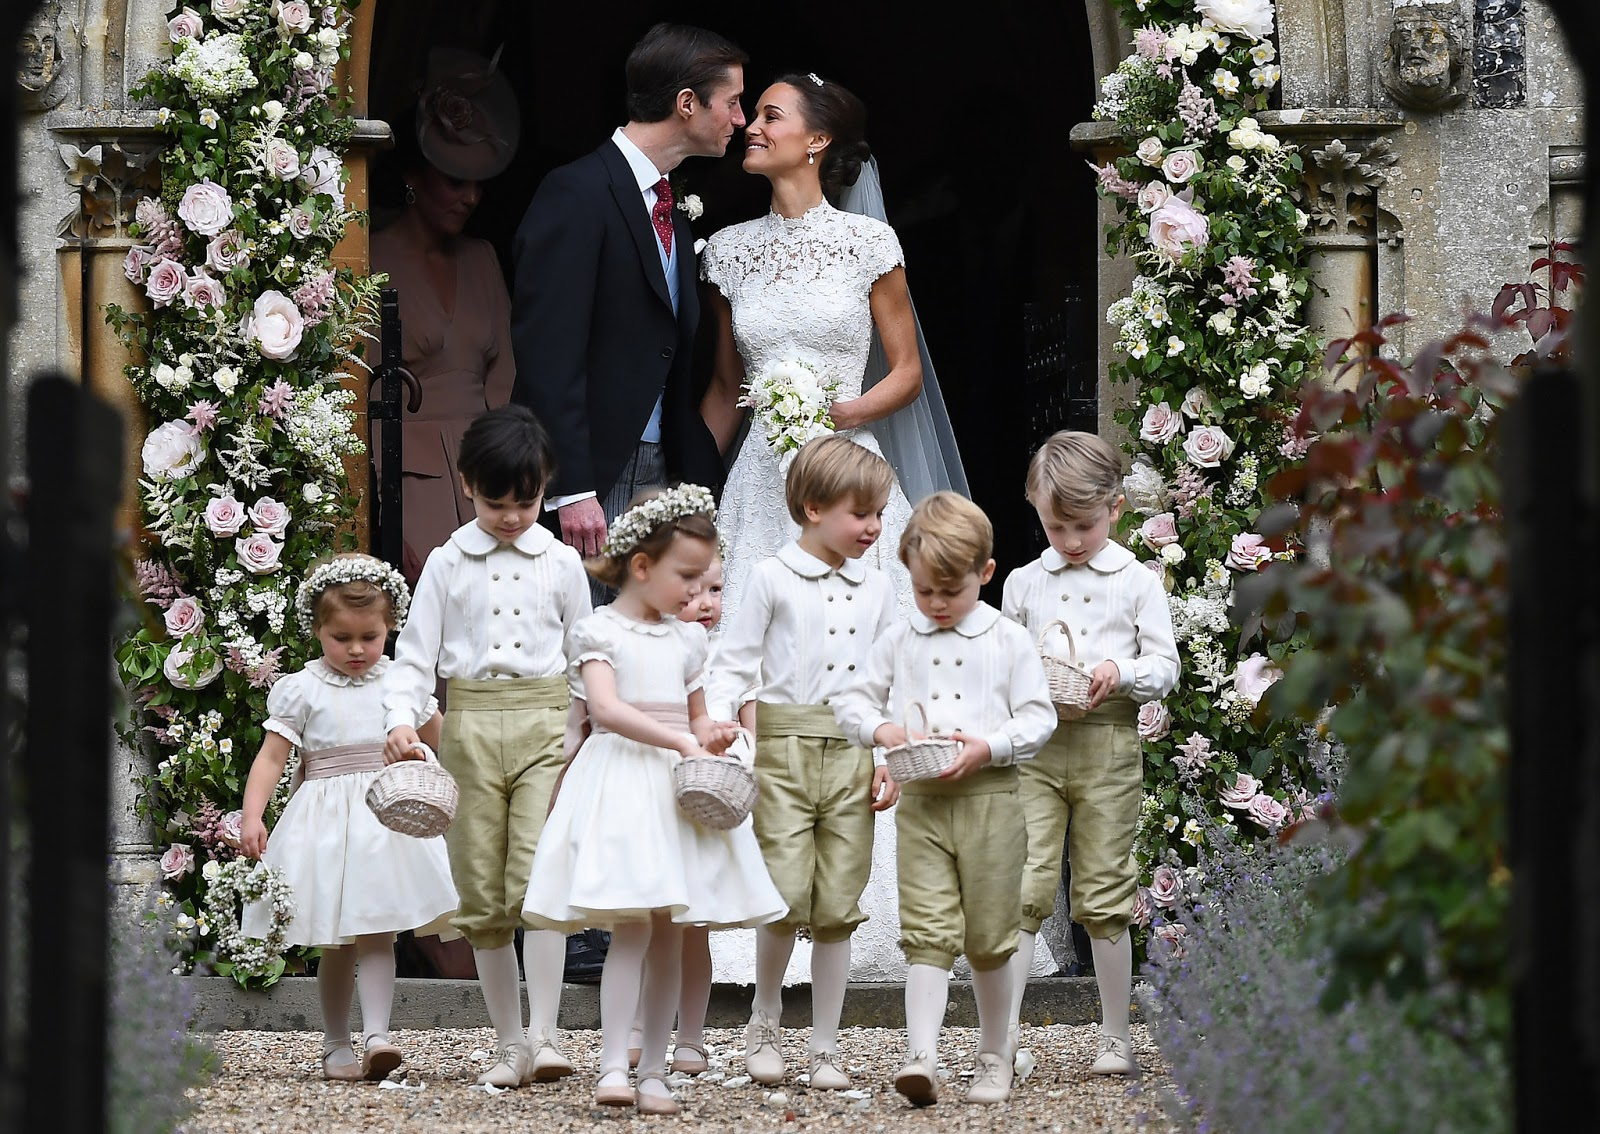 Pippa Middleton married James Matthews on Saturday. The bridal party included her niece, Princess Charlotte, far left, and nephew, Prince George, second from right